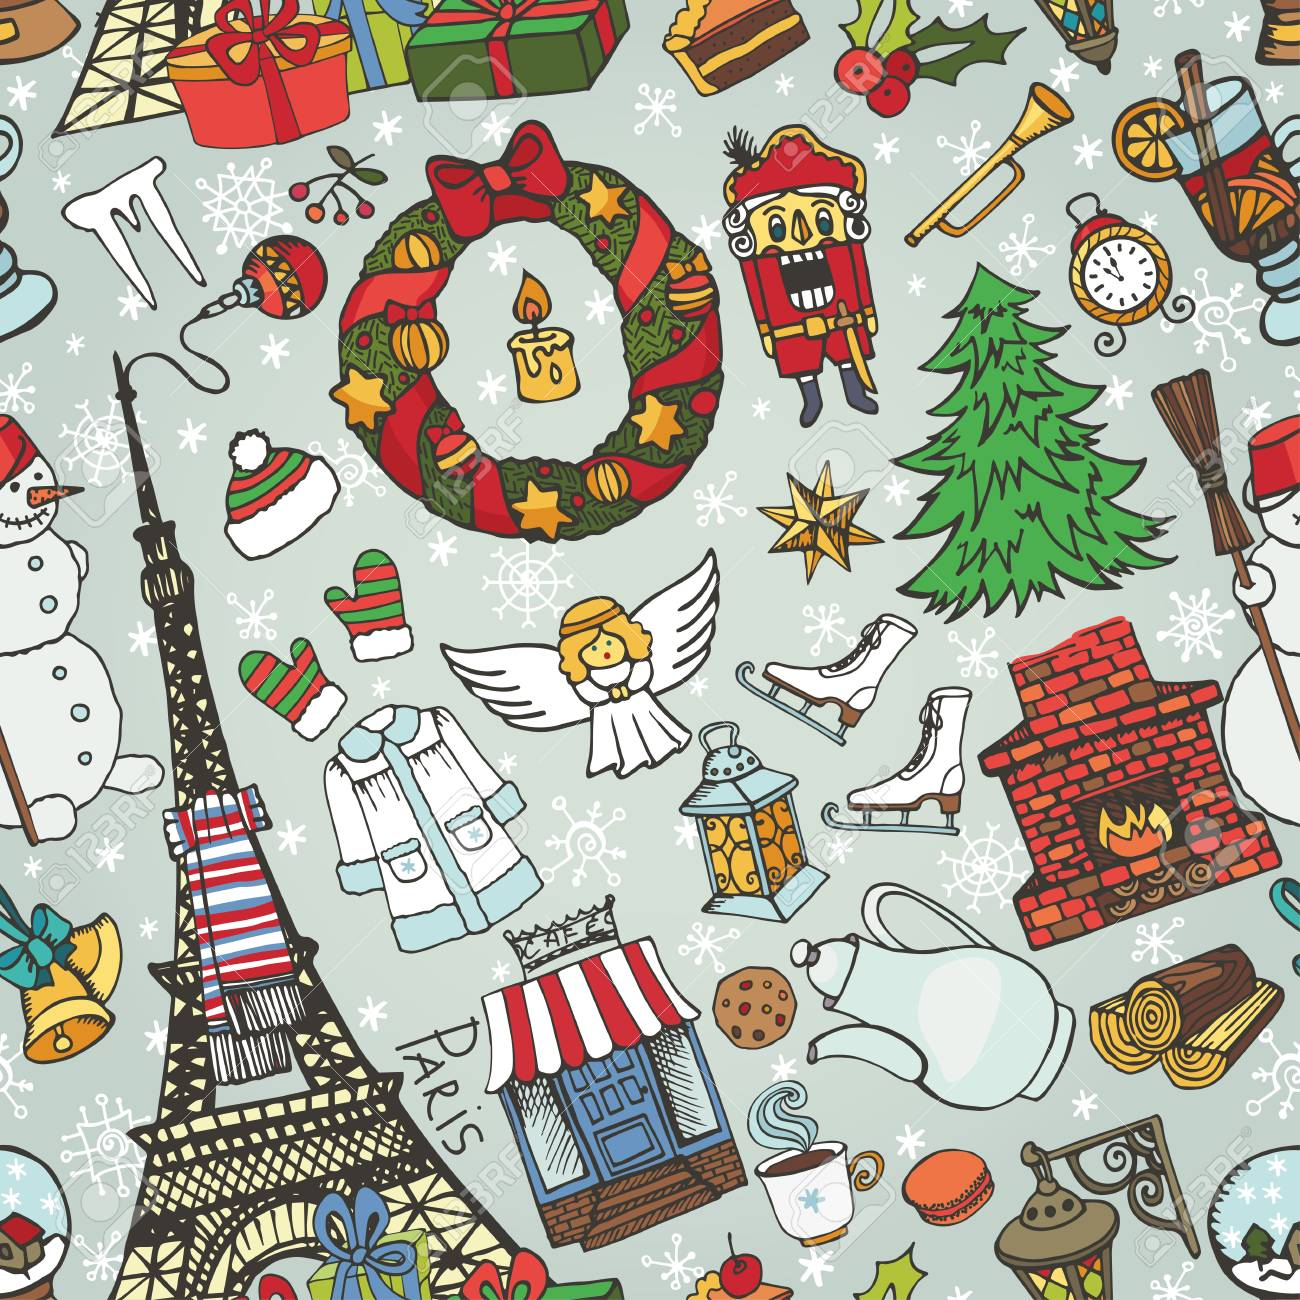 Paris Christmas Seamless PatternNoel Holiday Winter Doodle SymbolsEiffel Tower With Hand Drawing